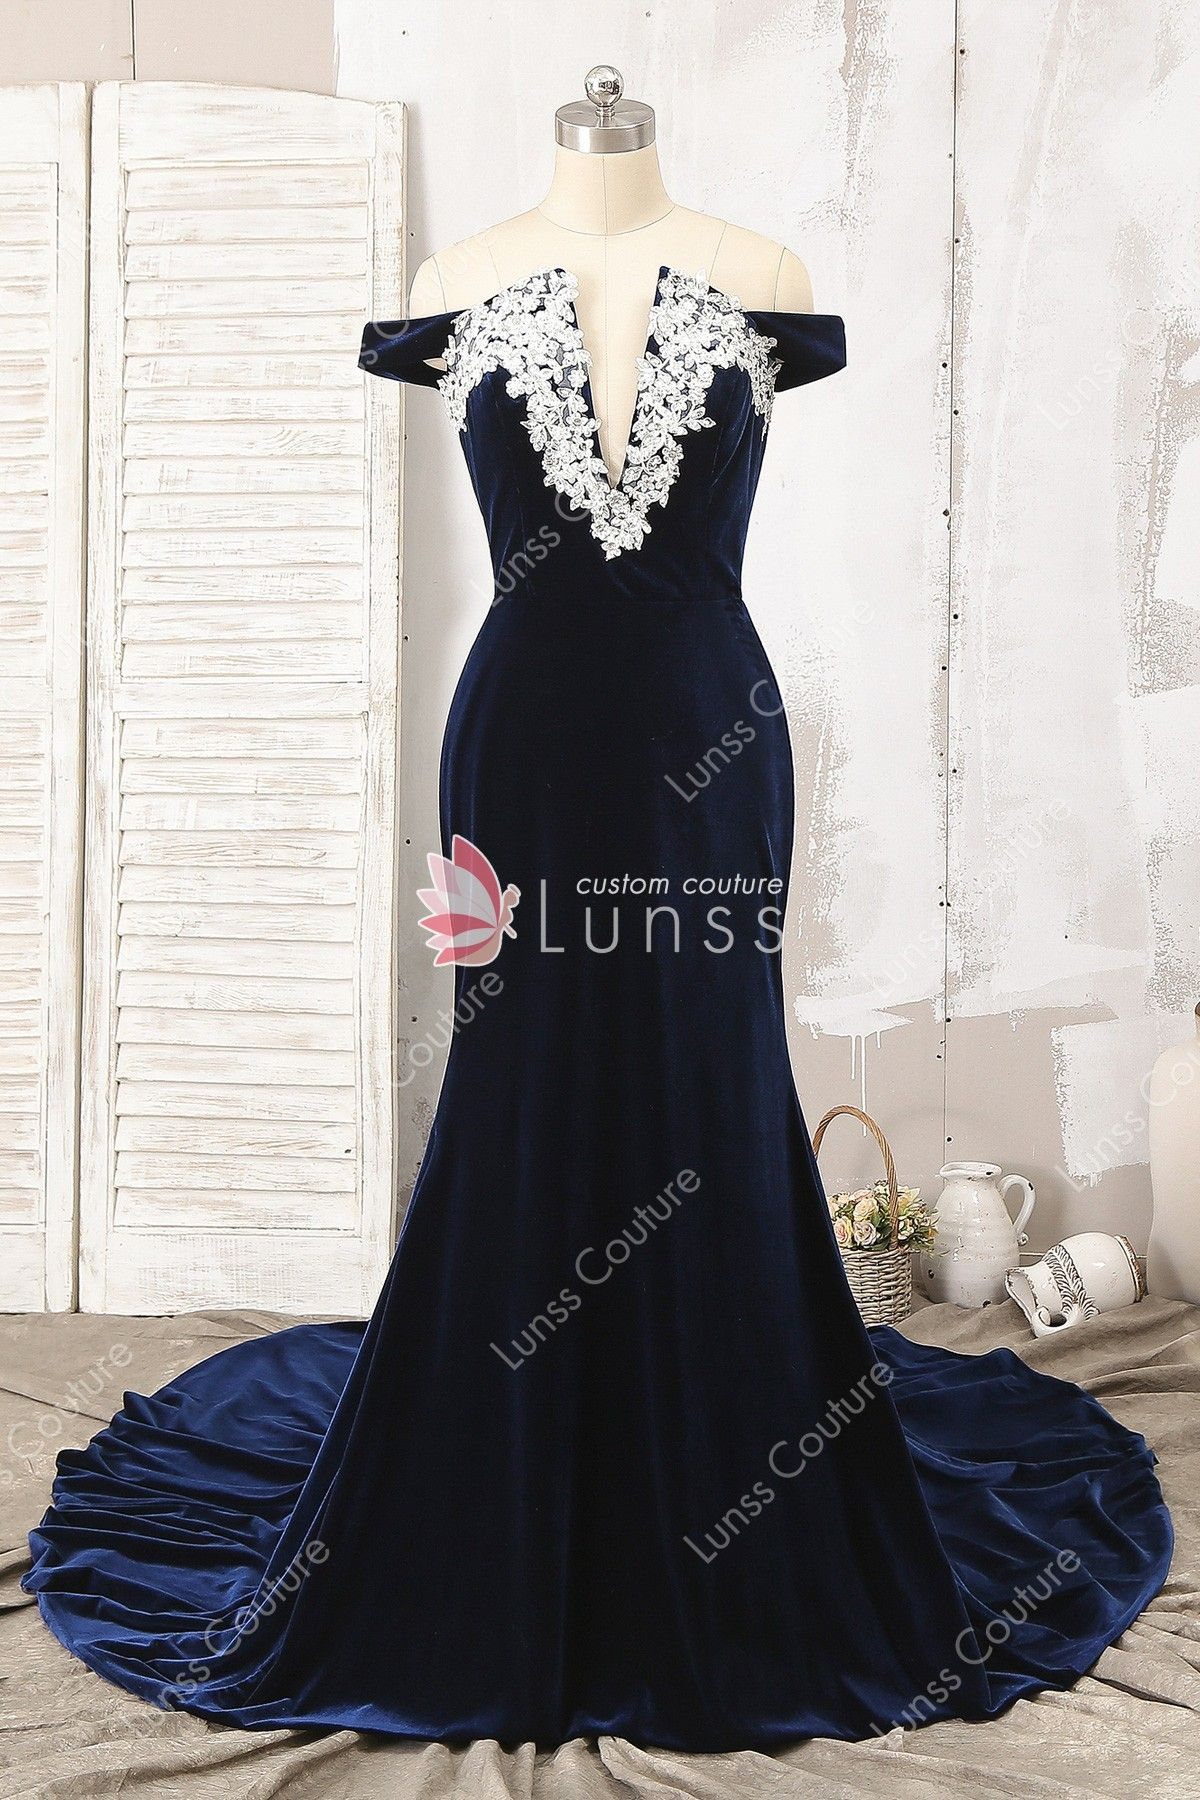 e34d54c3d4fdab This elegant custom silky velvet navy blue prom dress features  off-the-shoulder bodice with bead lace appliques adorned around the deep V  neckline